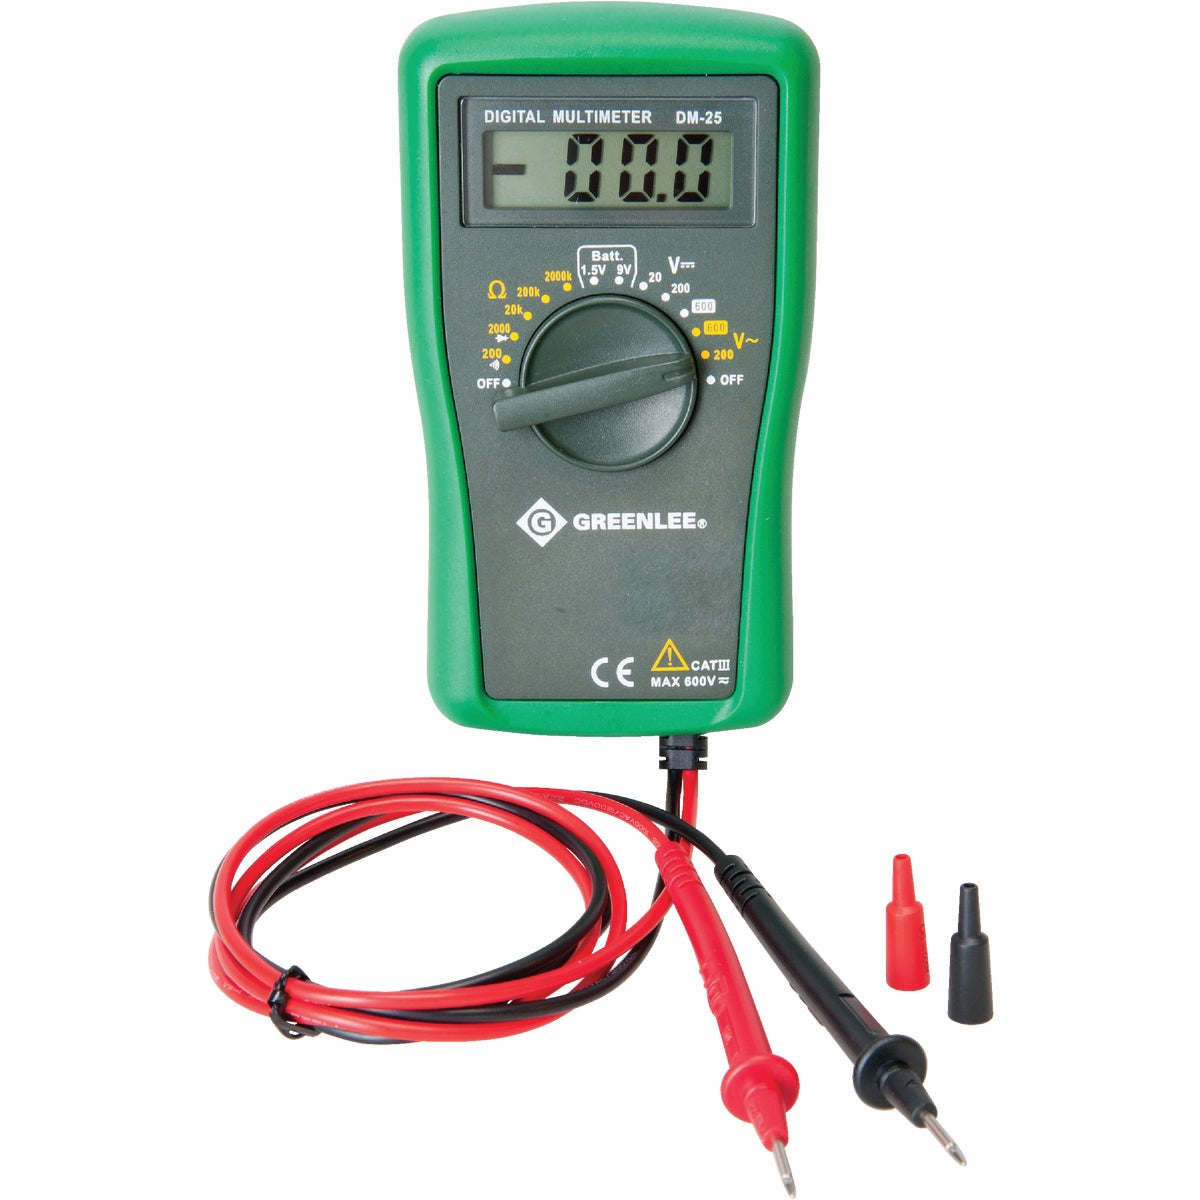 DIGITAL VOLT MULTI METER - DM-25 by Greenlee Textron